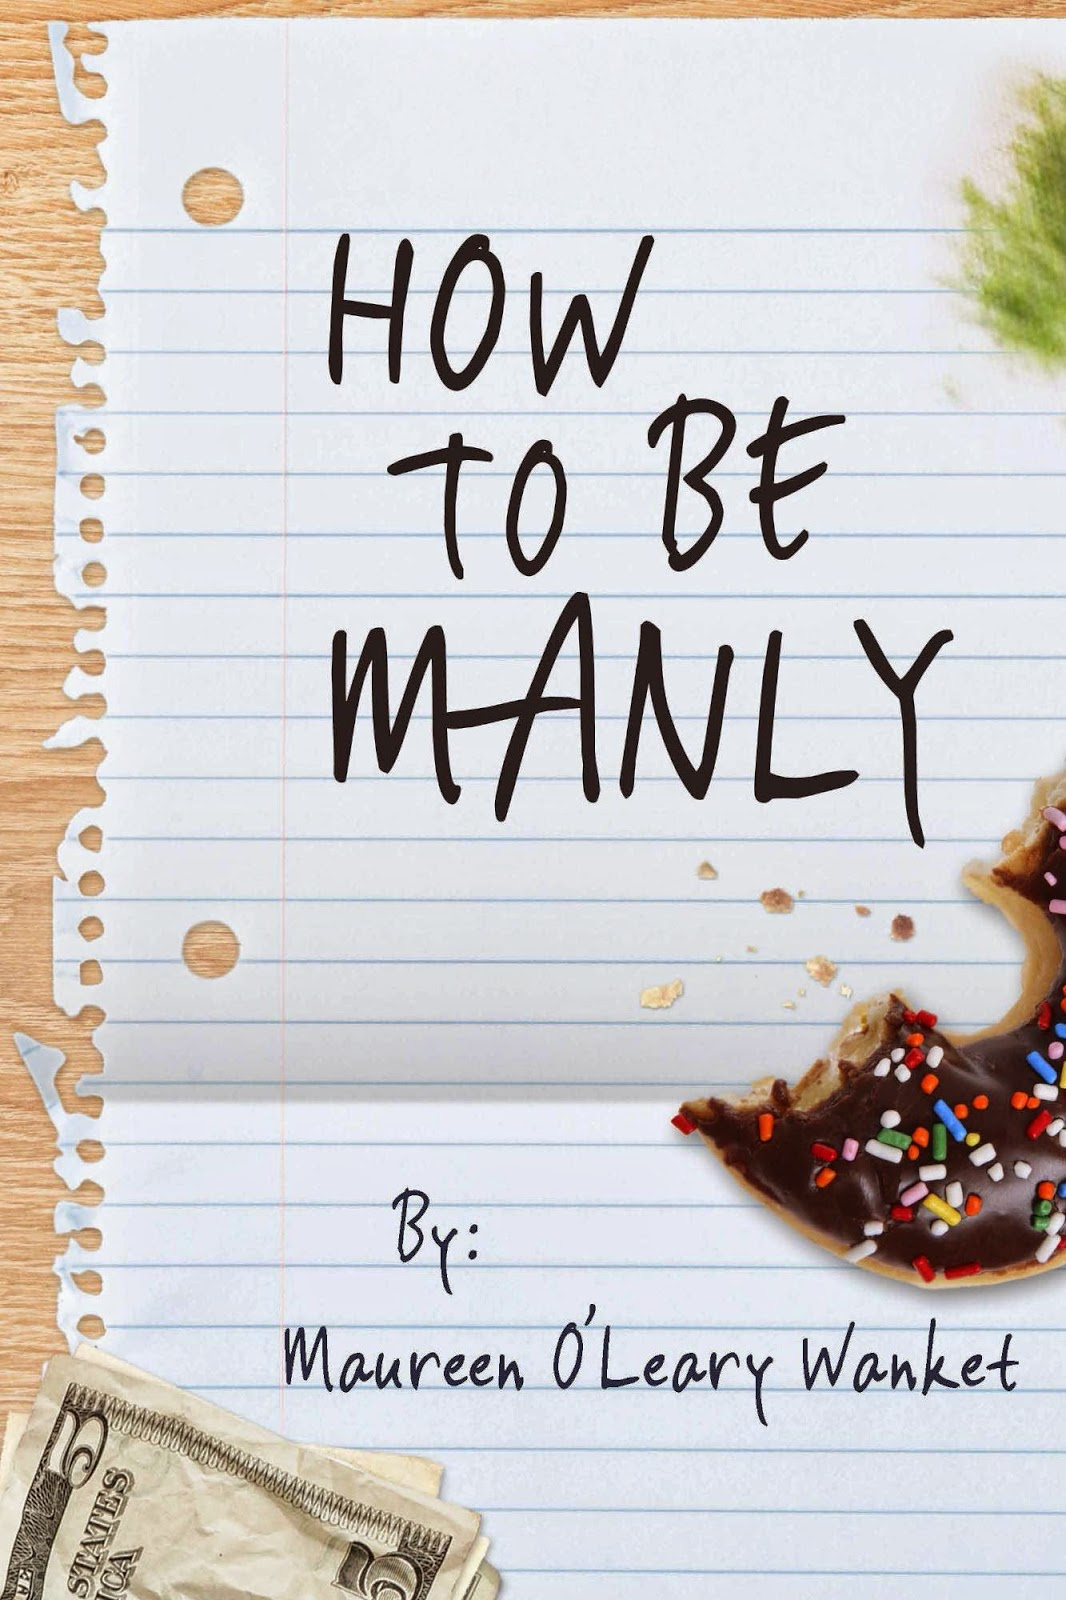 https://www.goodreads.com/book/show/22032720-how-to-be-manly?from_search=true